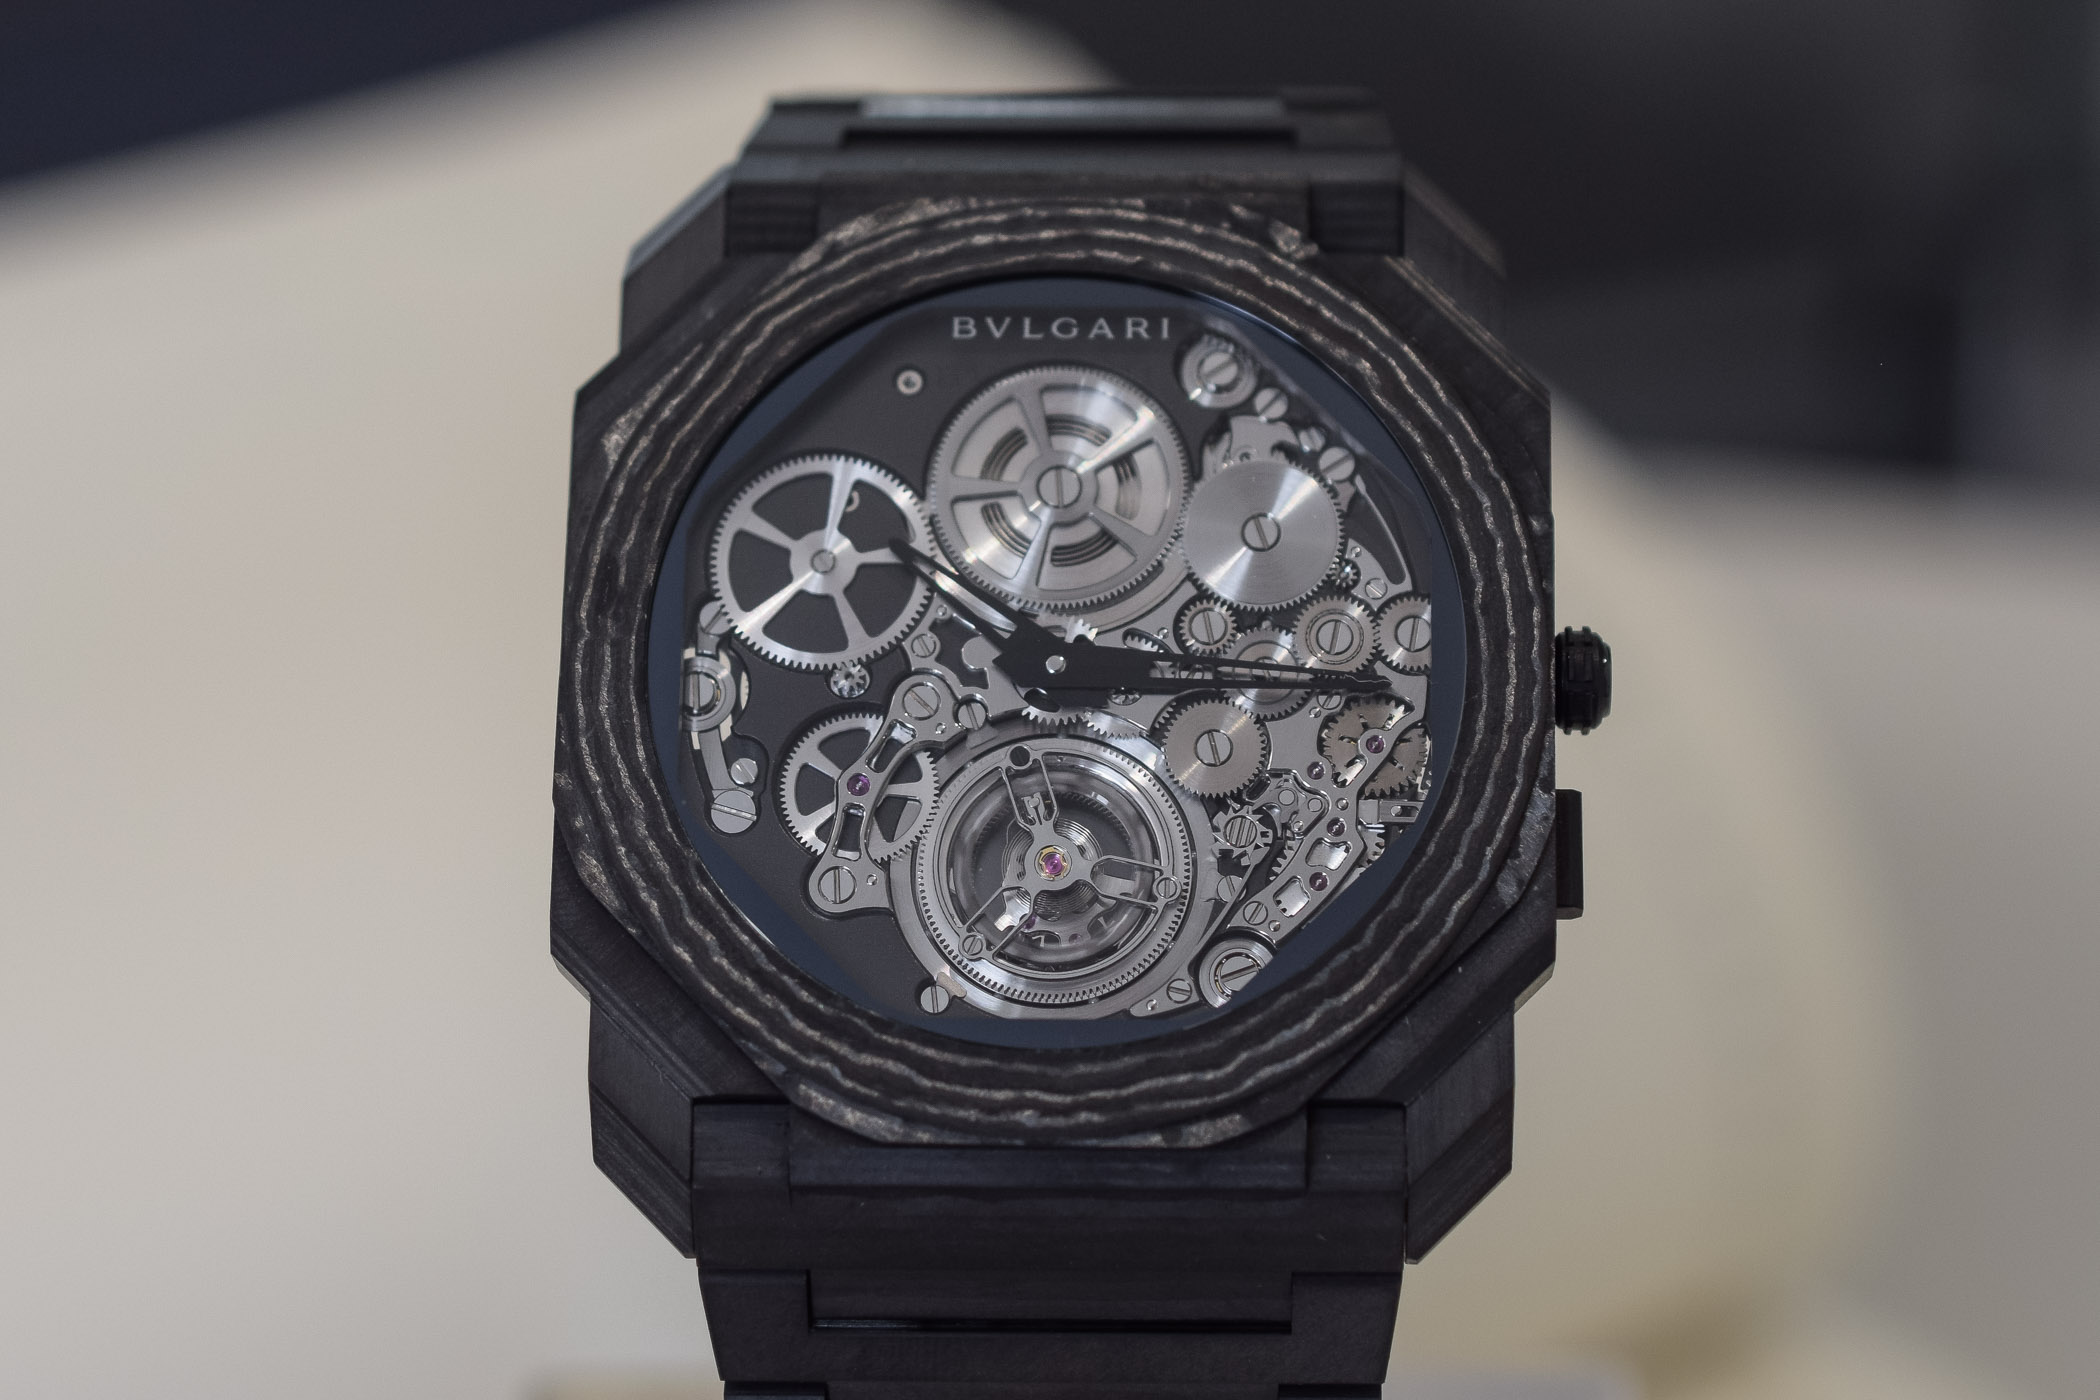 Bvlgari Octo Finissimo Tourbillon Automatic now in Carbon - SIHH 2019 - 14